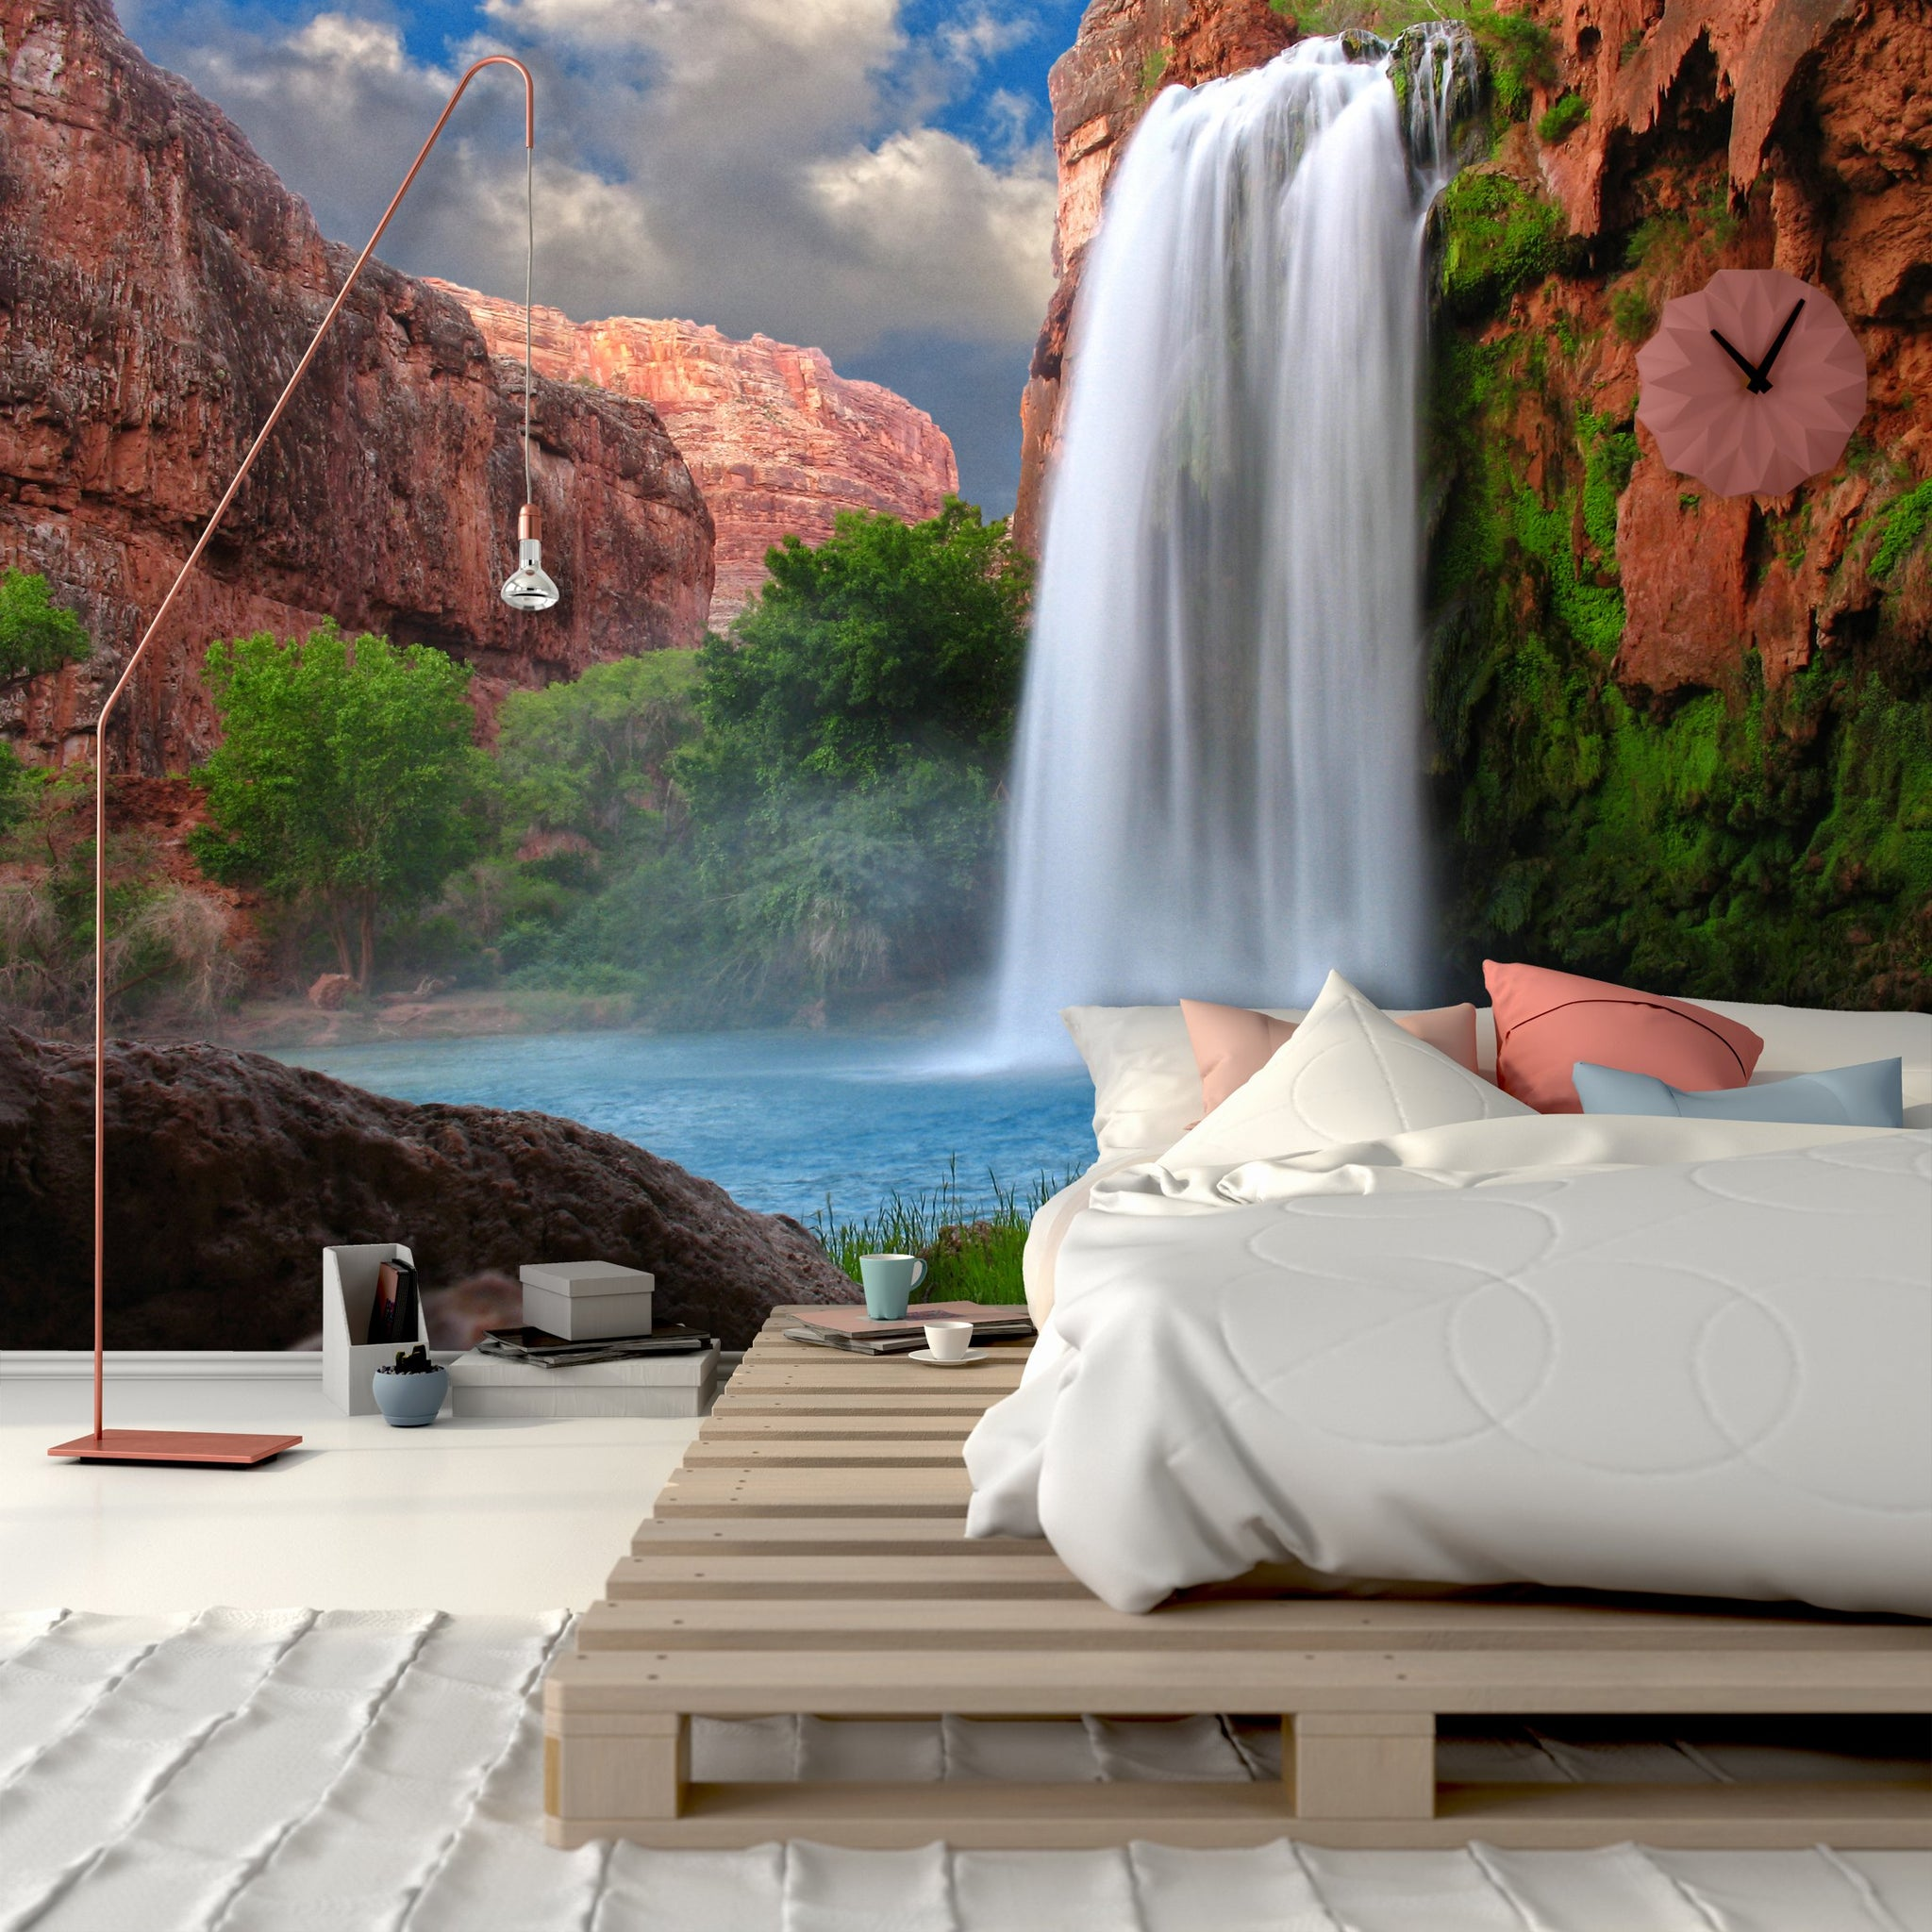 Wallpaper Stunning Waterfall SW088